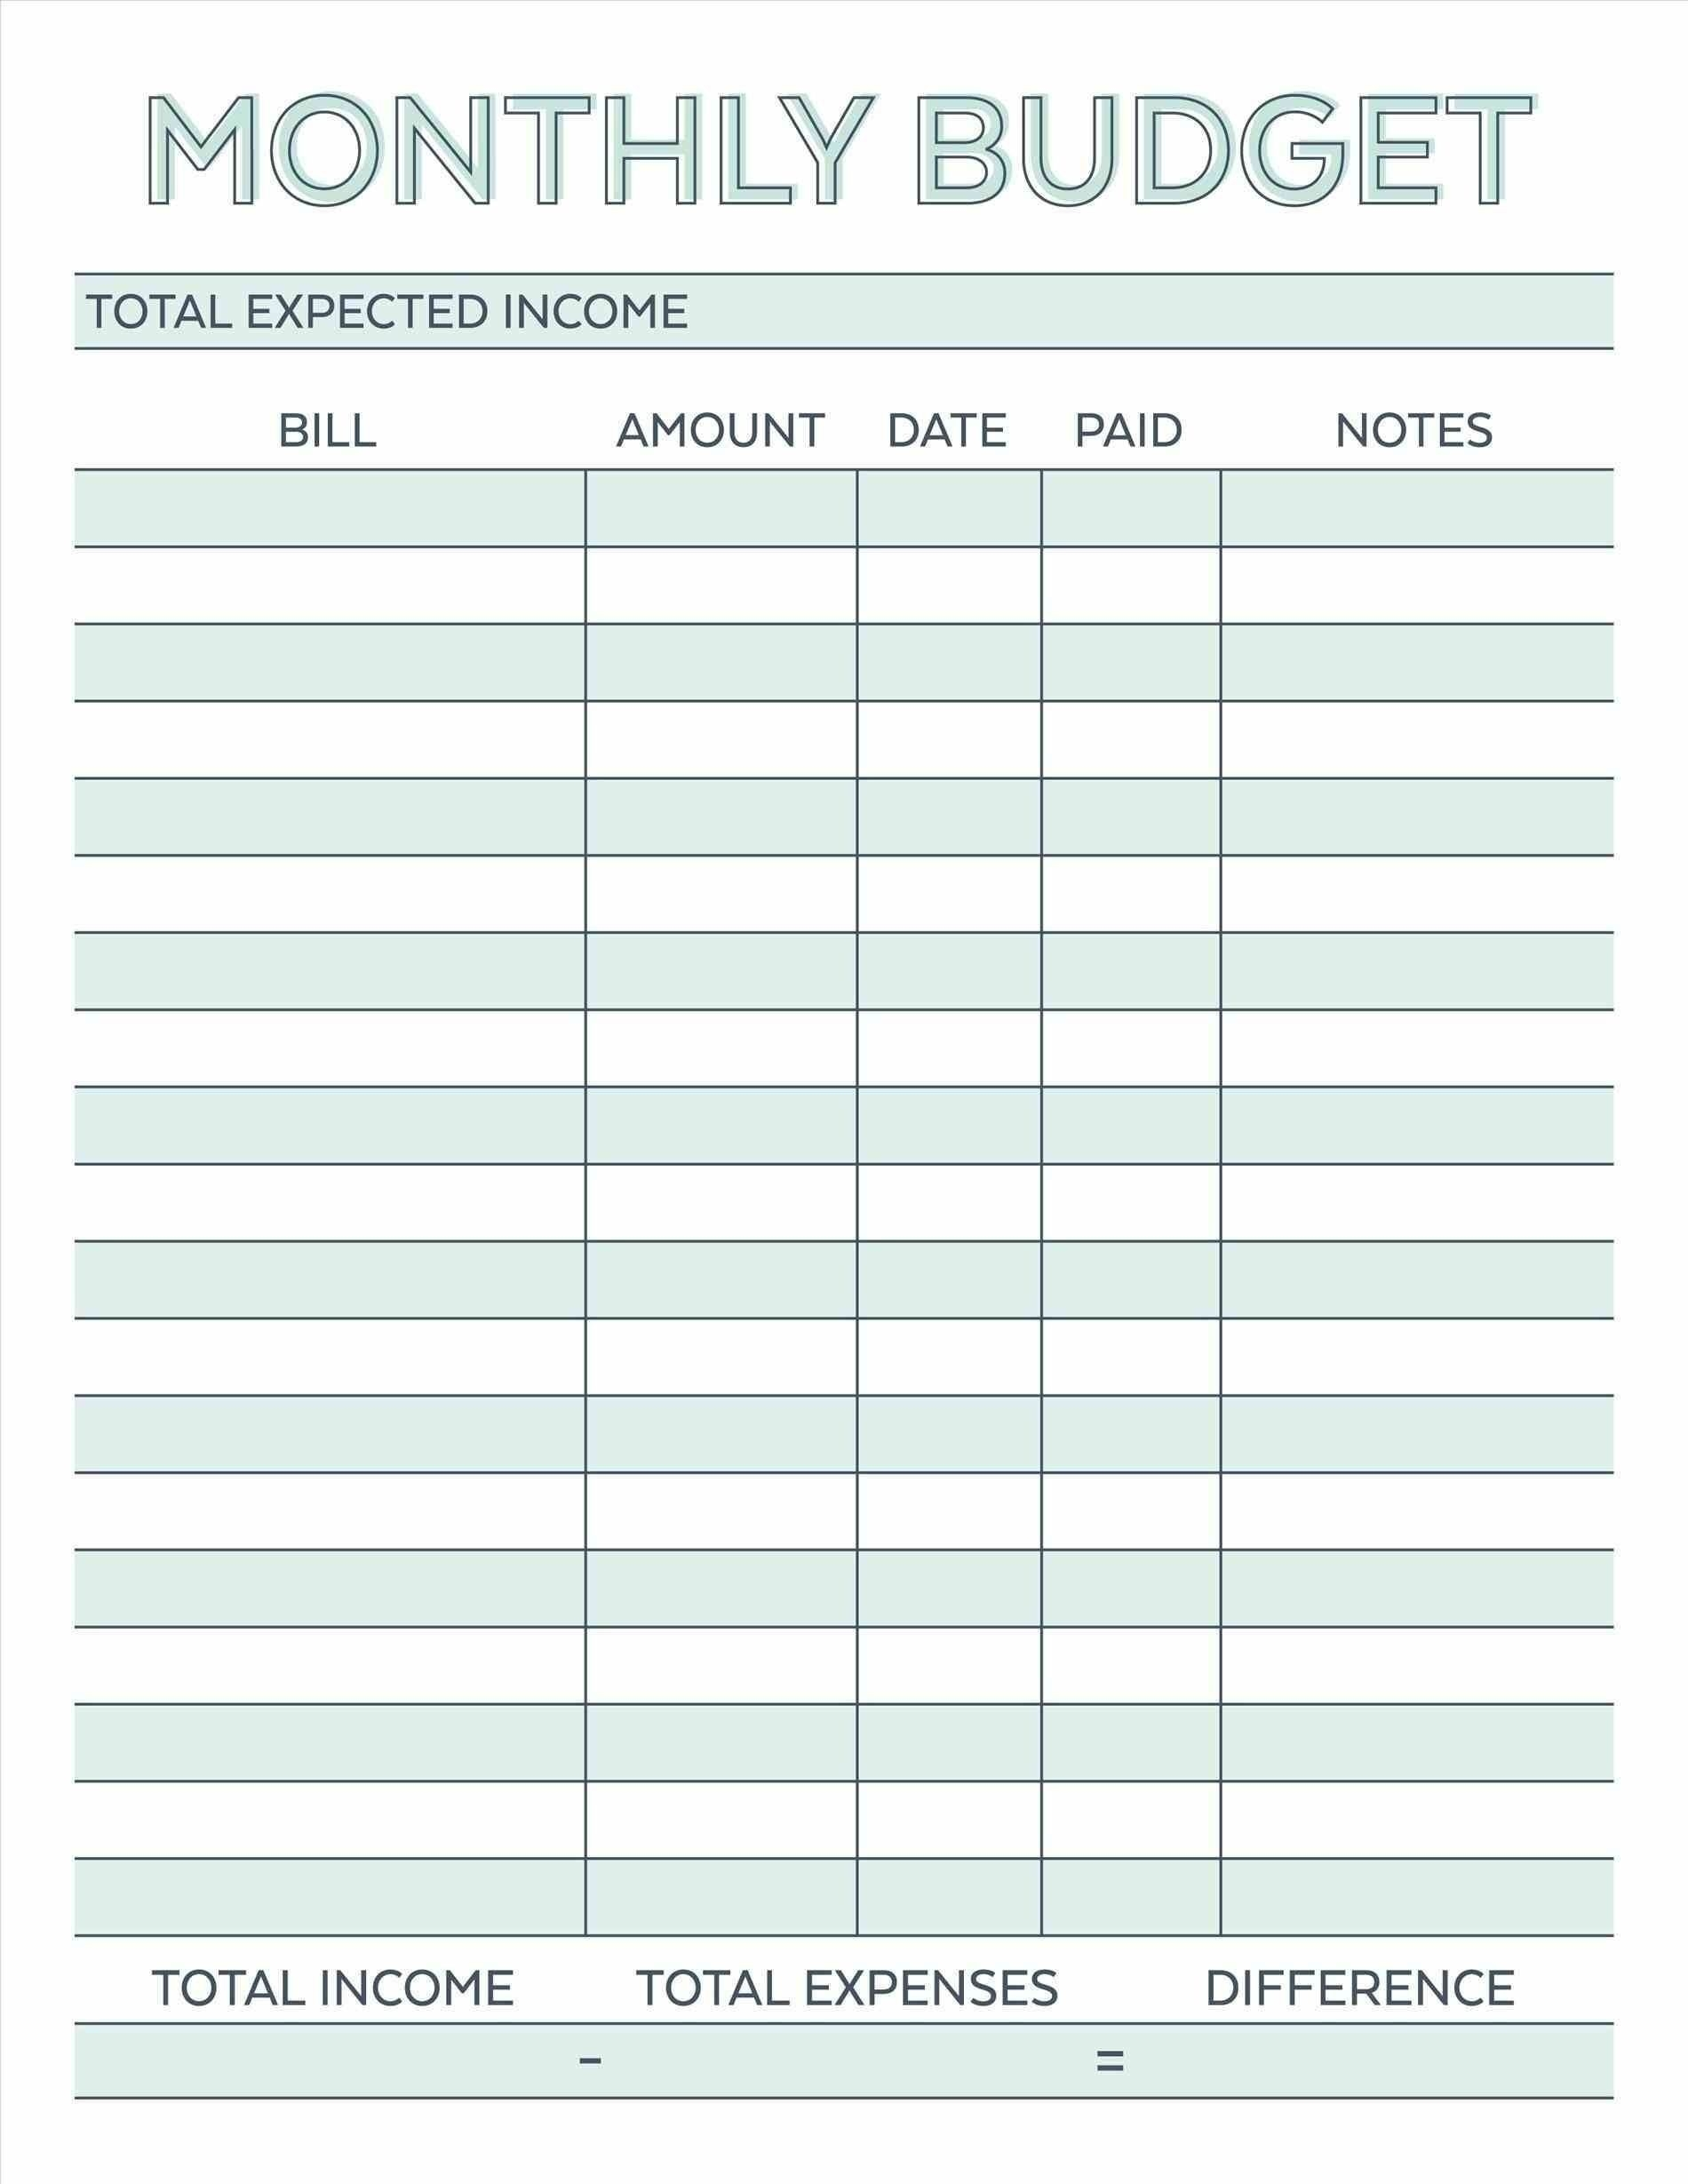 Monthly Bill Payment Worksheet Printable Template